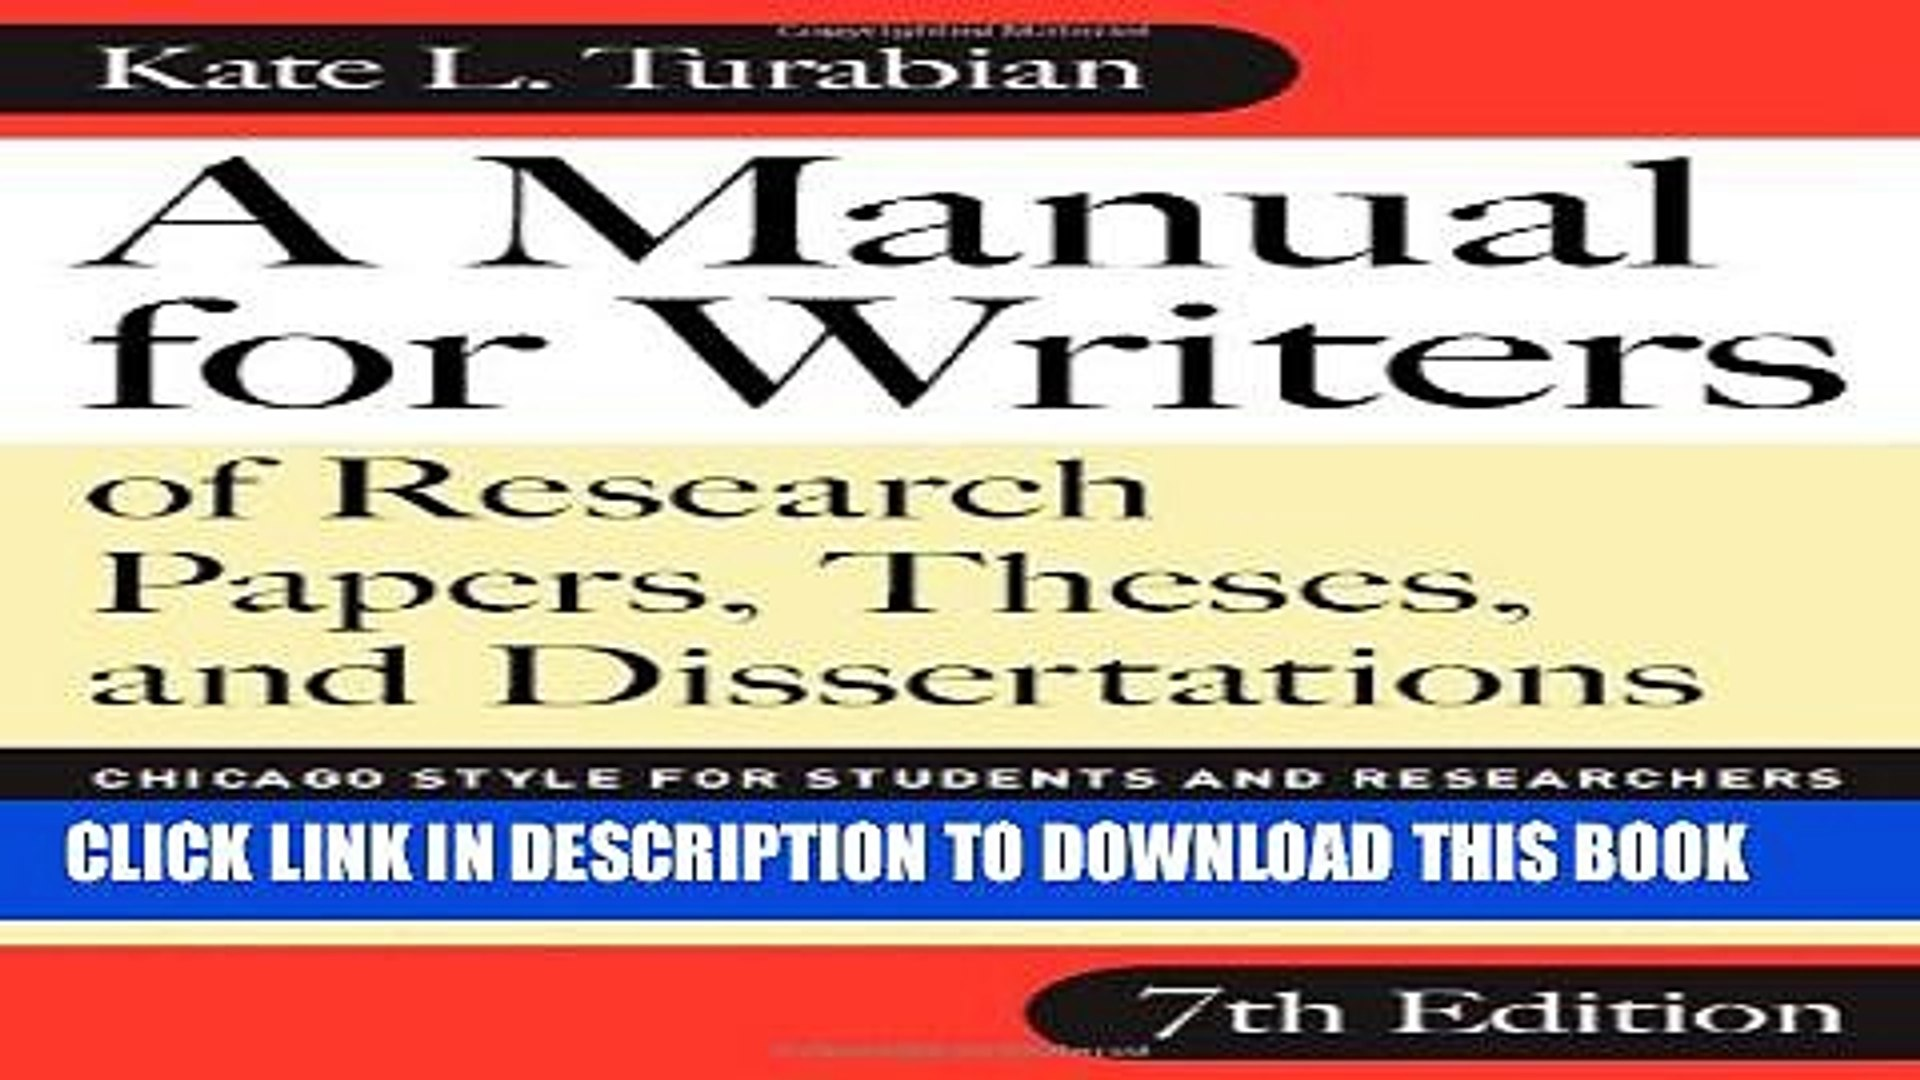 021 Research Paper Manual For Writers Of Papers Theses And Dissertations X1080 Sensational A Ed. 8 Turabian Ninth Edition Full